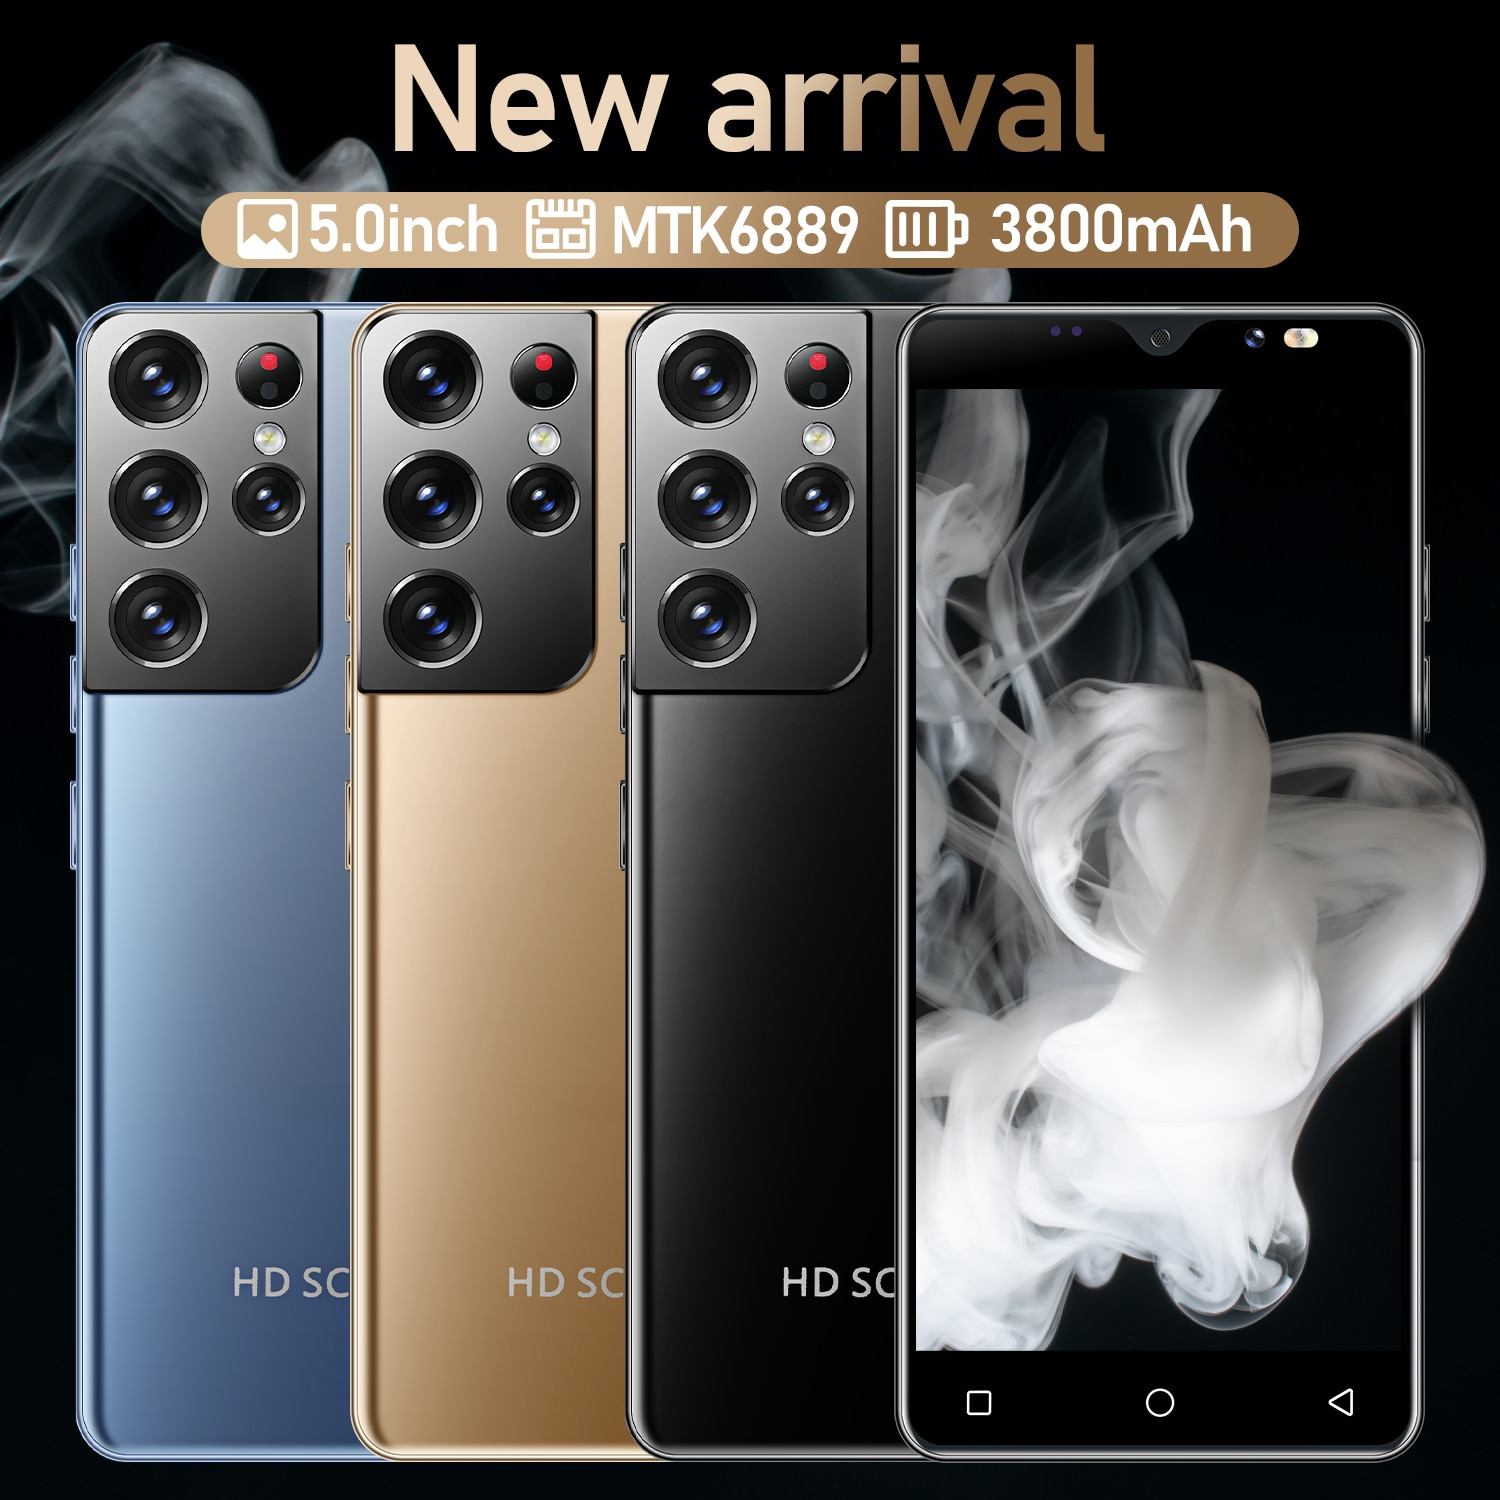 5.0 Inch Celular Galxy S30 Ultra 4GB 64GB 12MP+24MP Android 3800mAh 11 Core Really Telephone MTK6889 5g Cellphones Smartphones